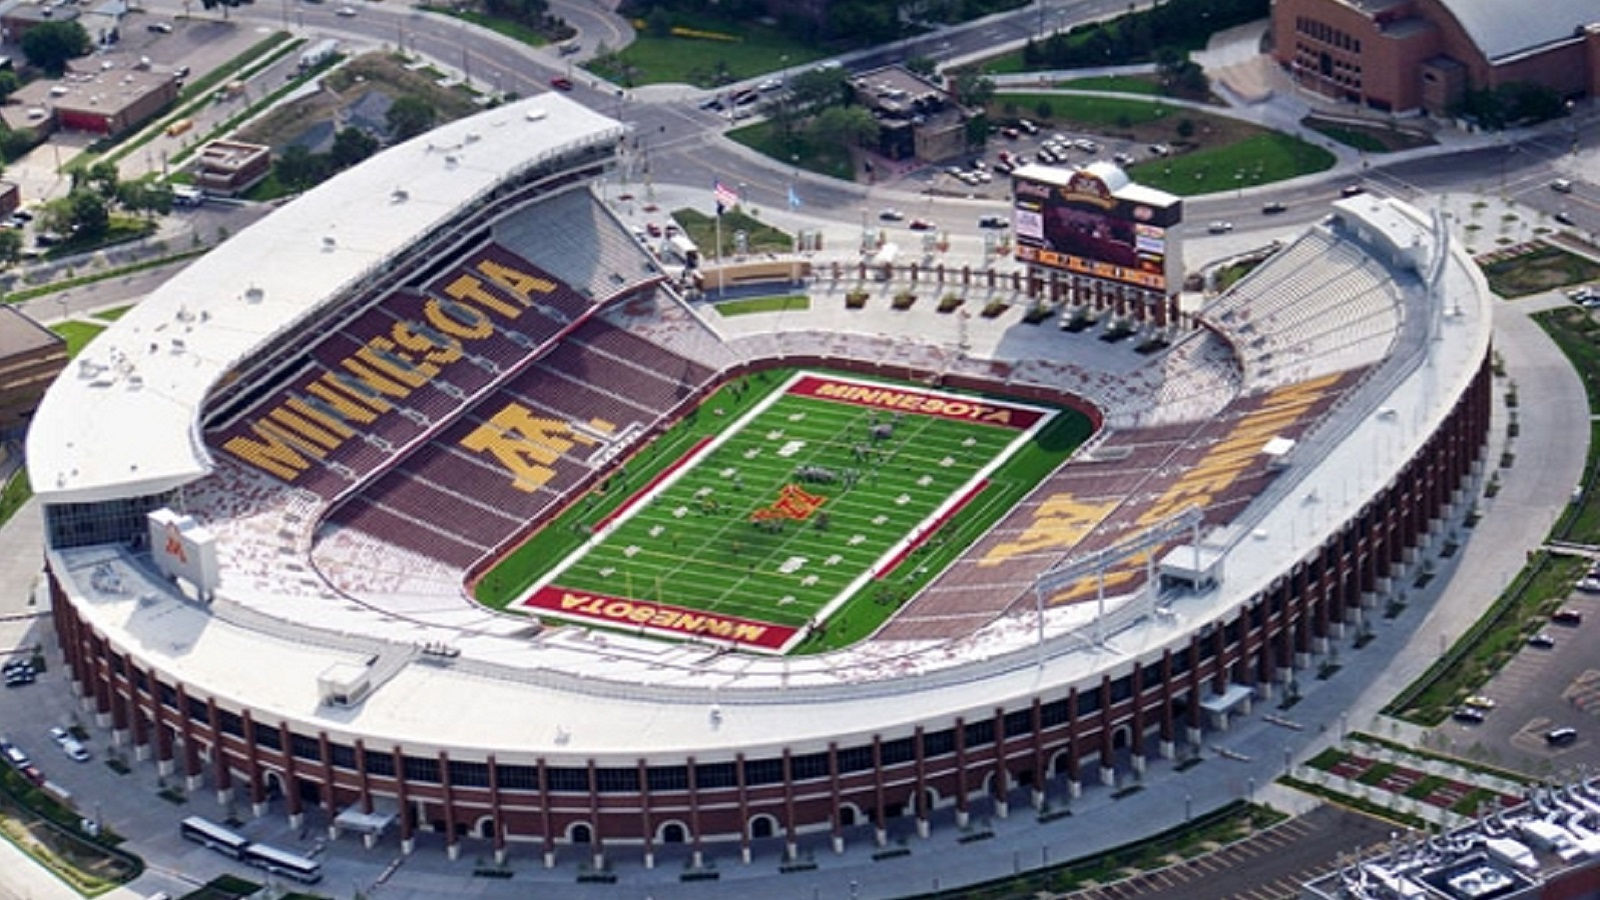 Sheraton Minneapolis West Hotel - TCF Bank Stadium